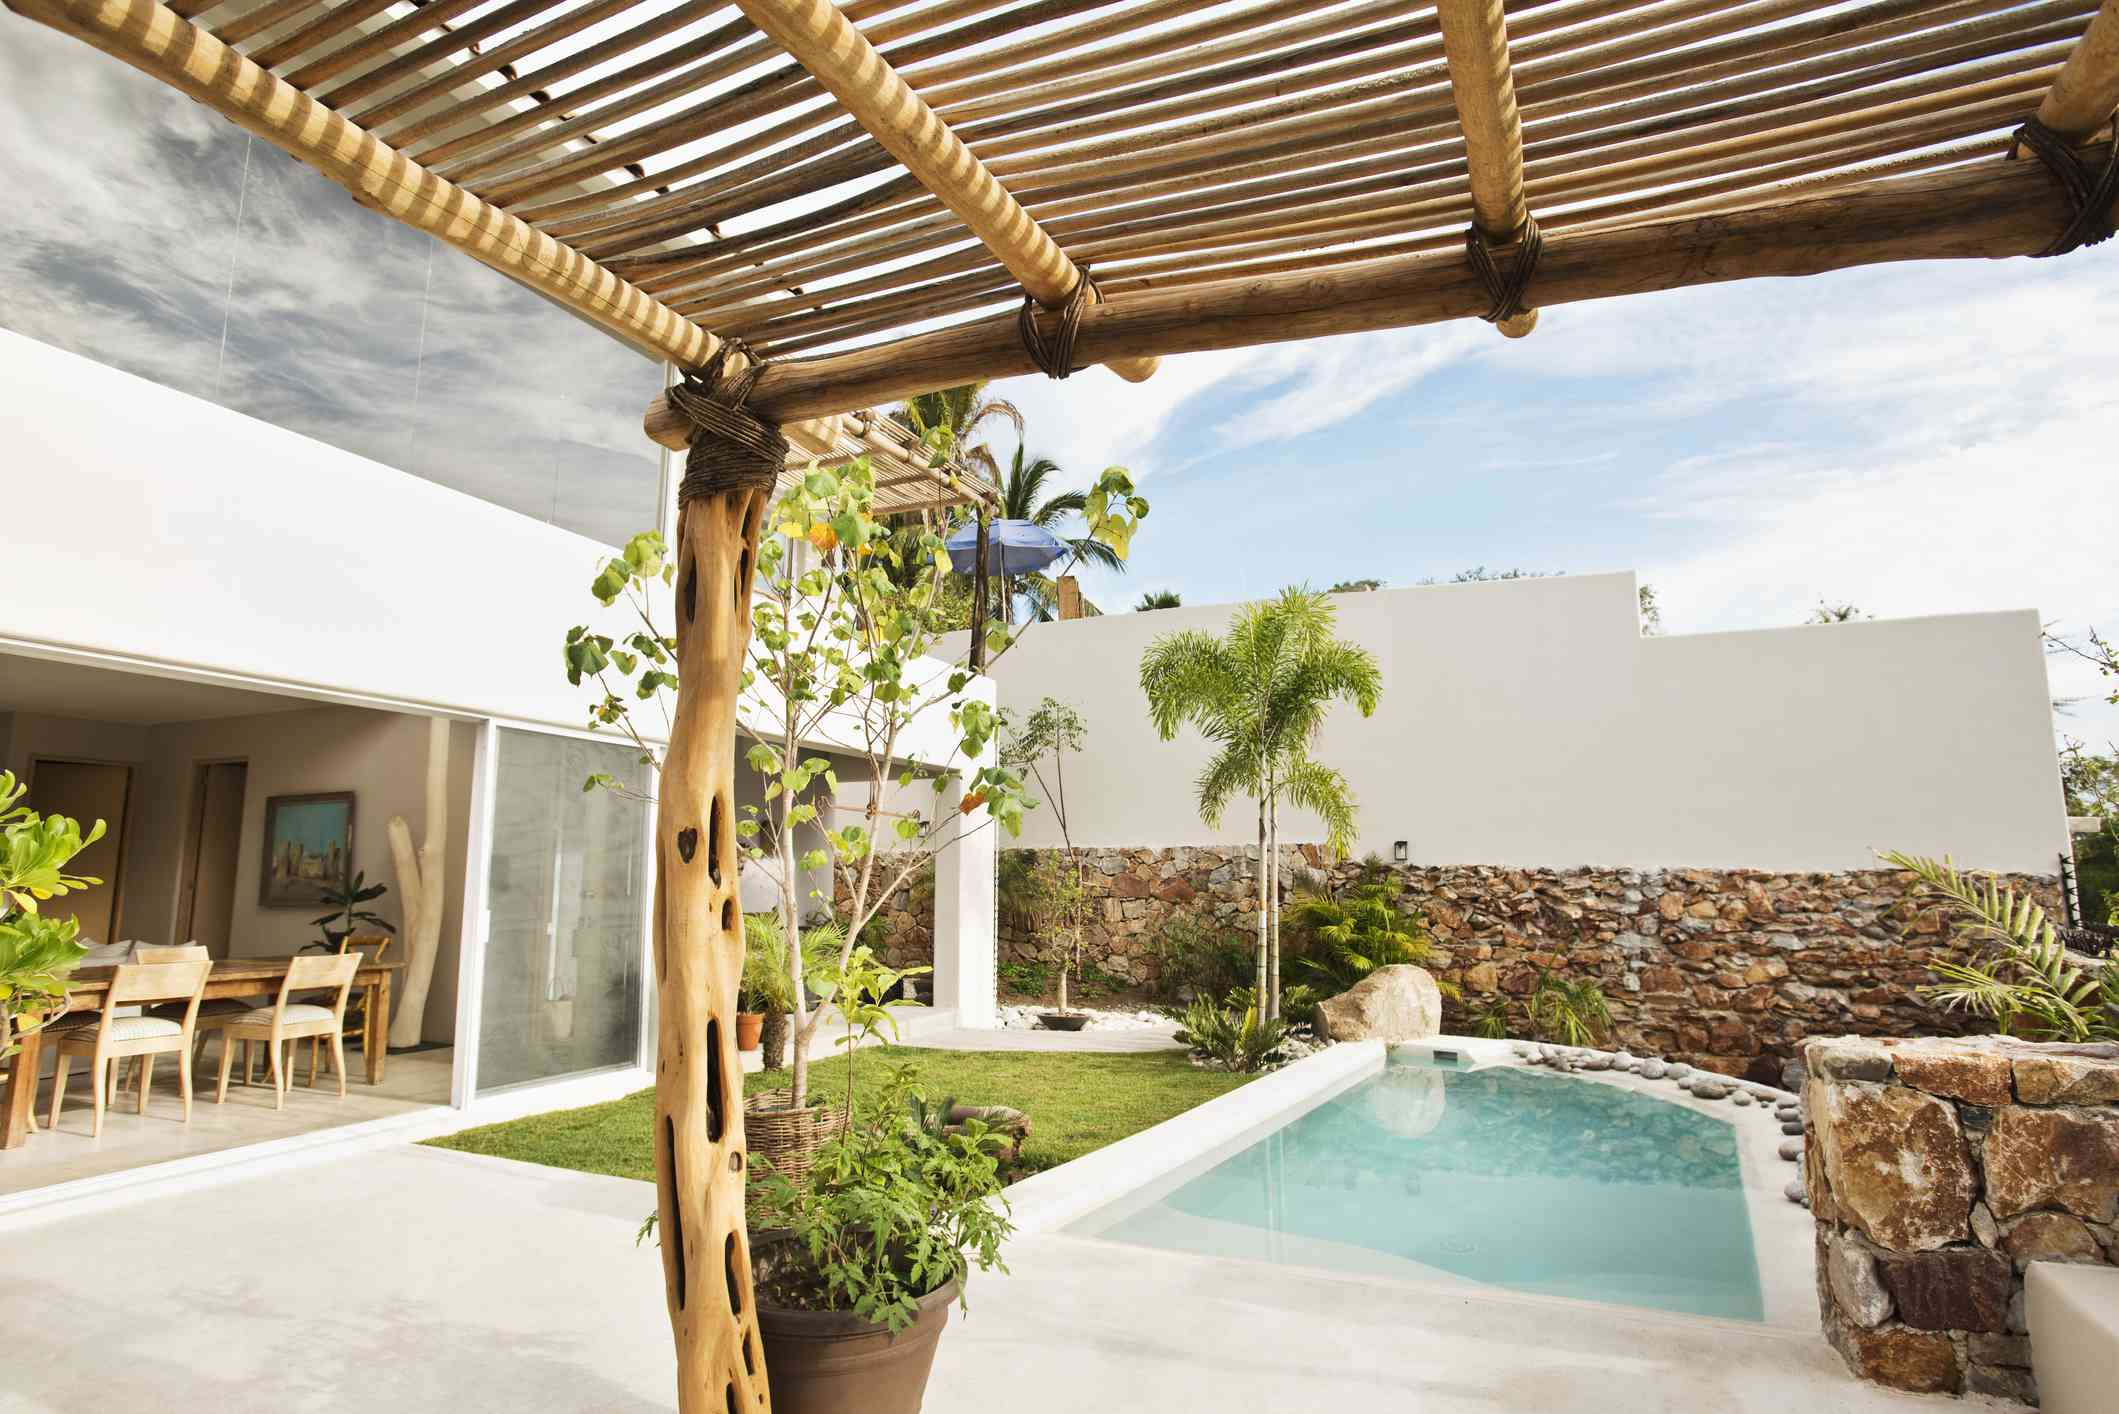 A view of a backyard pool with a short stone wall and a wooden pergola.